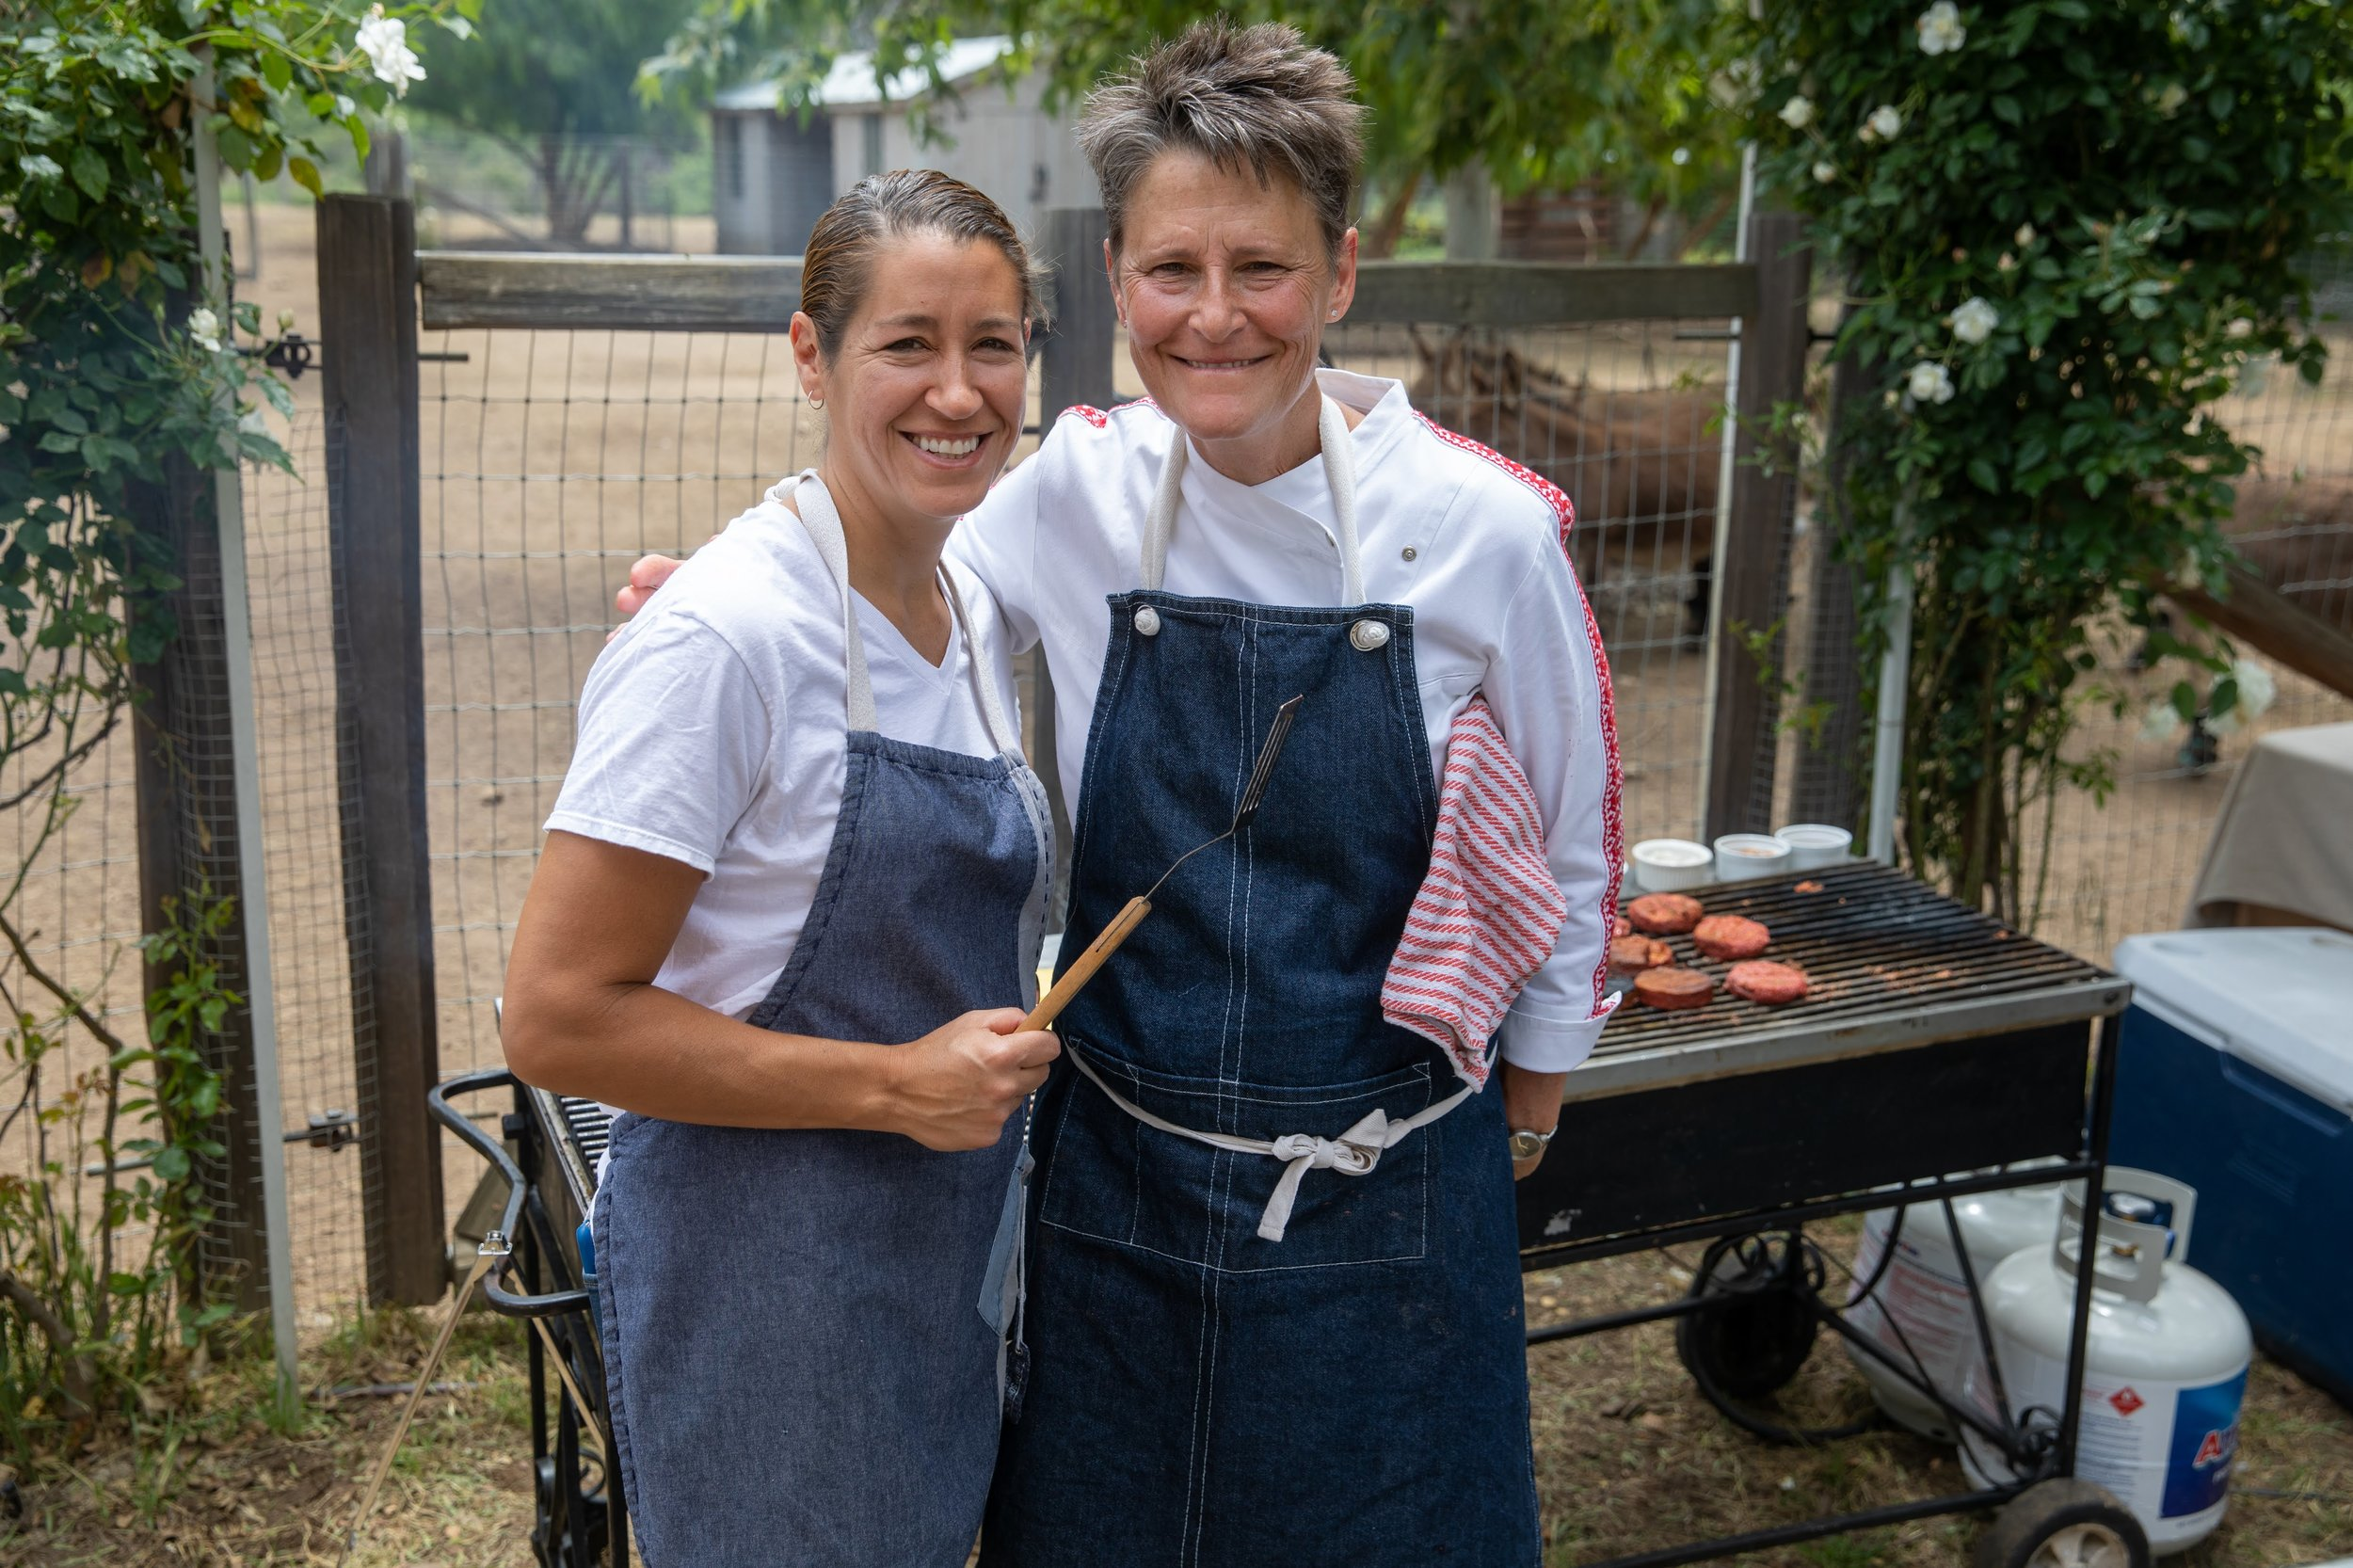 Our friends Lisa and Emily who volunteered their time to handle all the grilling. We served Beyond Meat burgers with Violife cheese.. SOOOO GOOD!